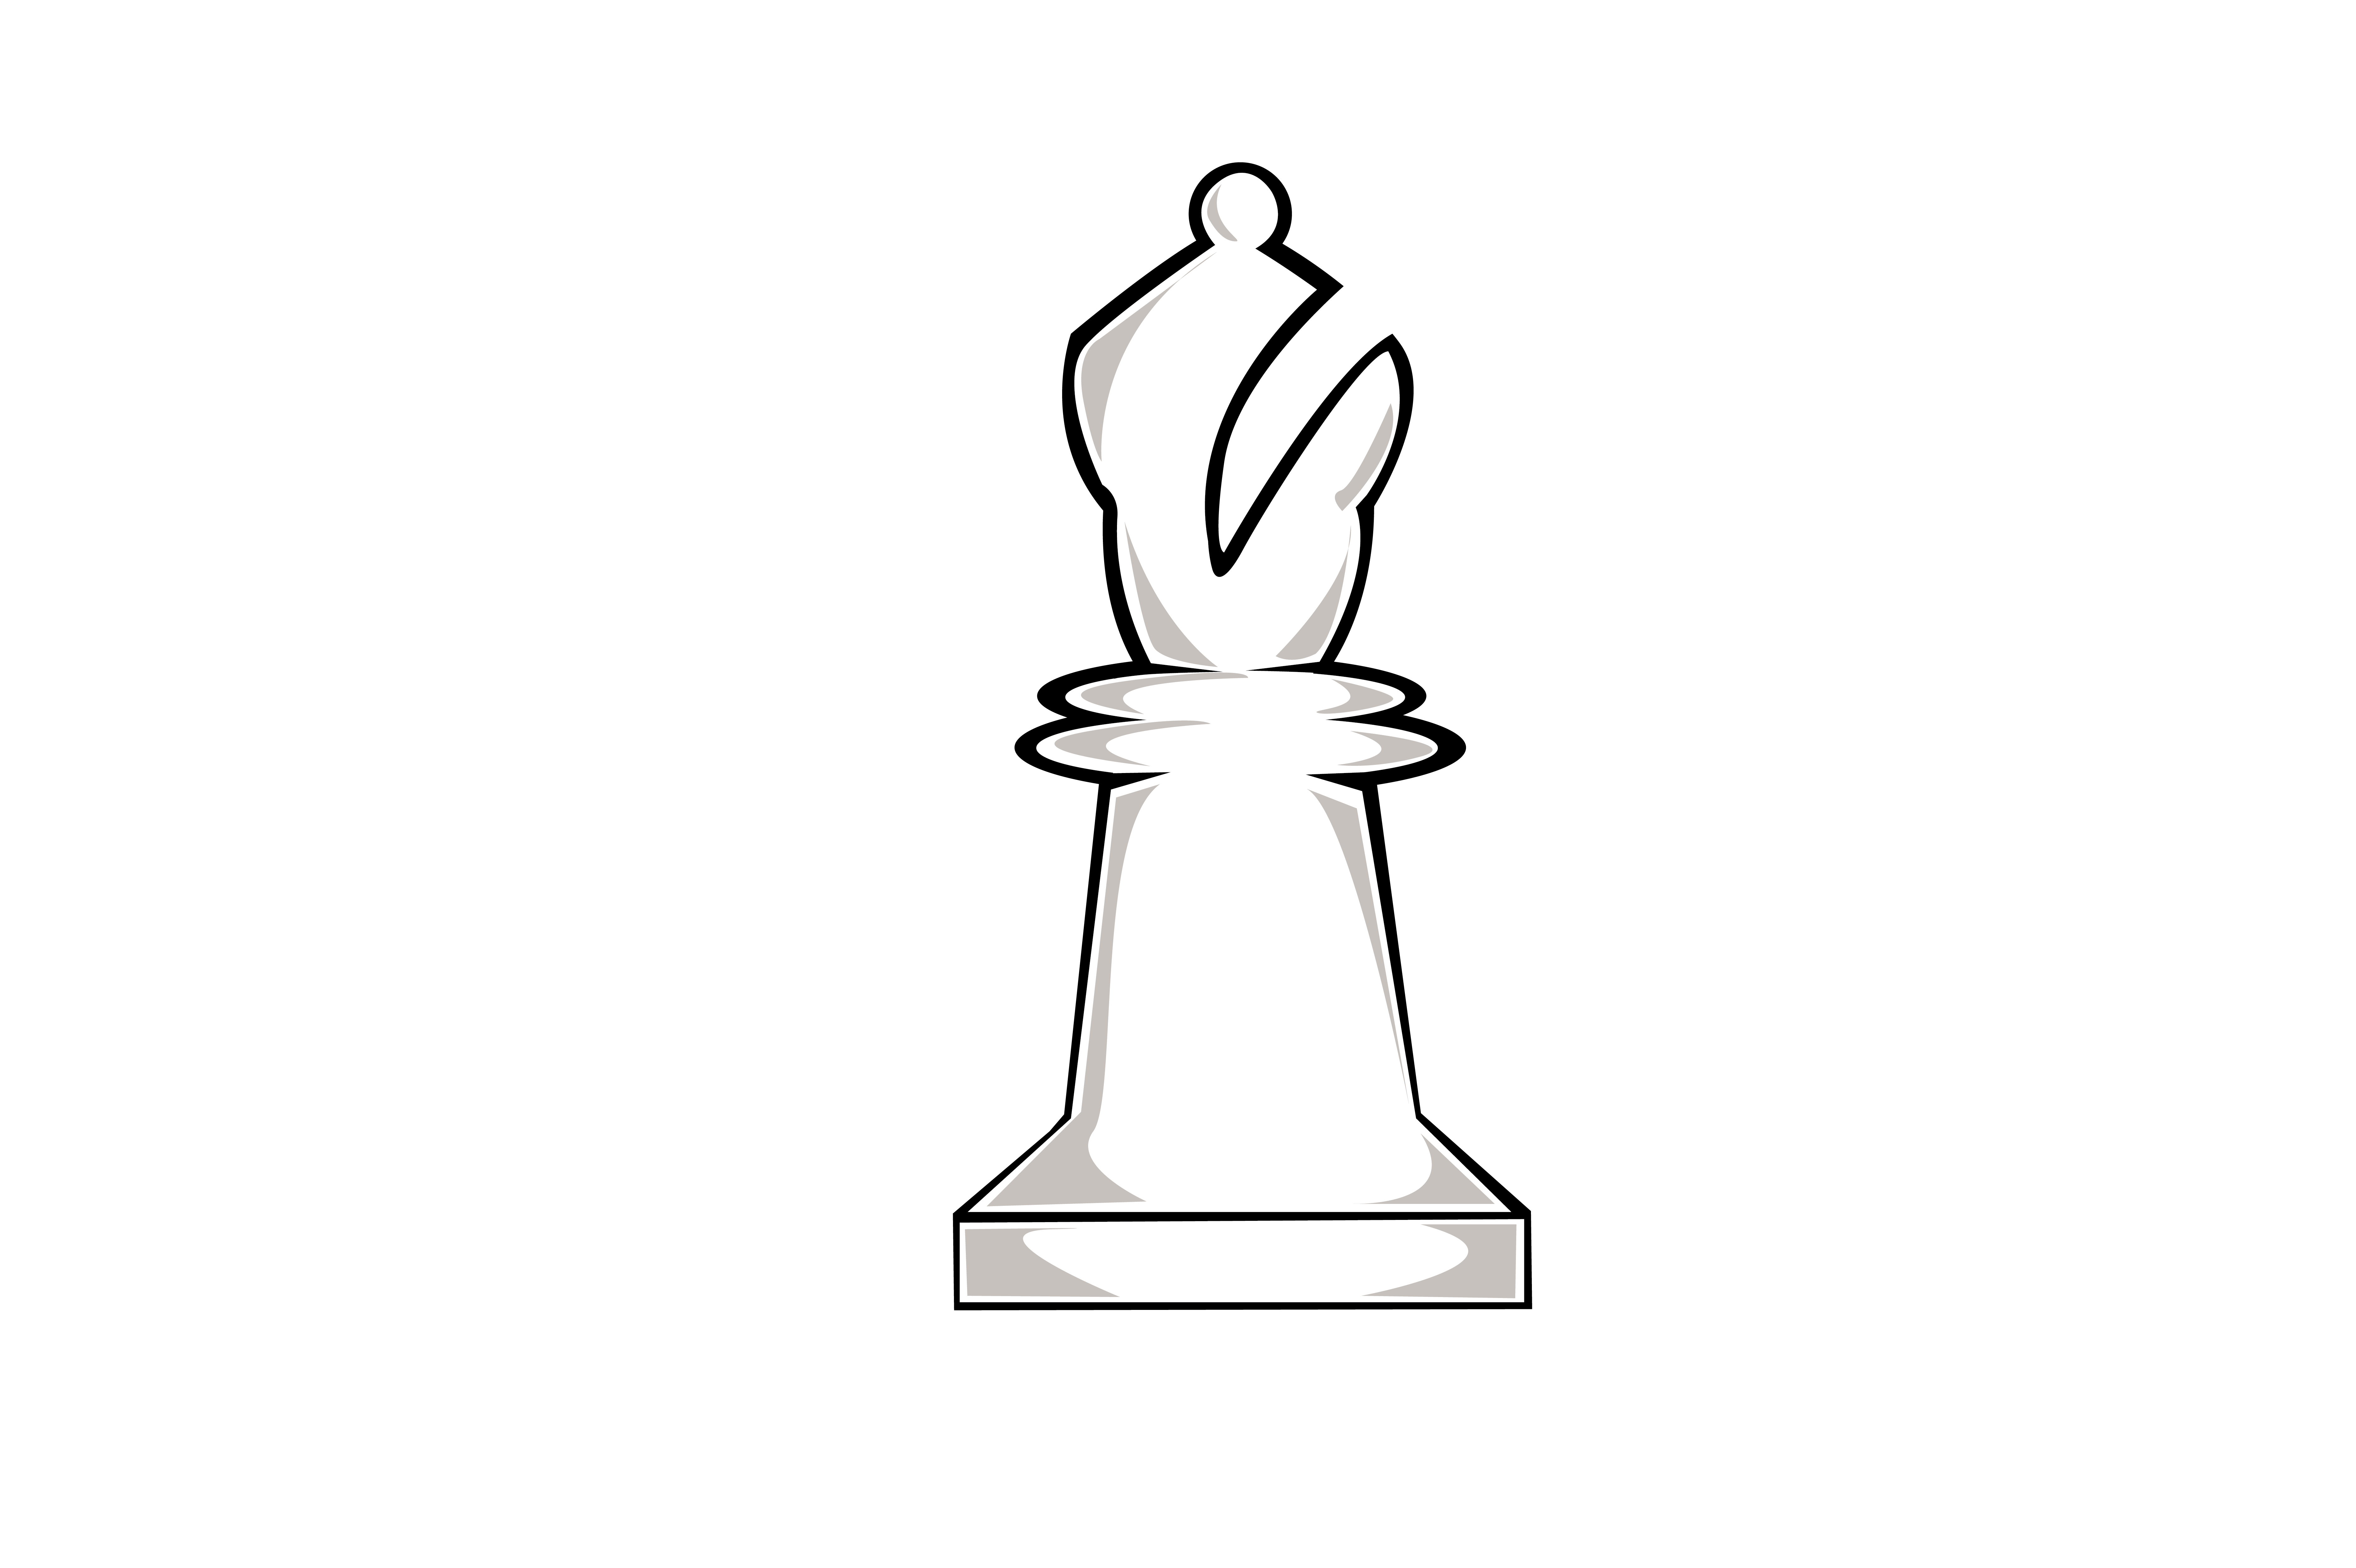 Download Free Chess Piece Bishop Graphic By Rfg Creative Fabrica for Cricut Explore, Silhouette and other cutting machines.